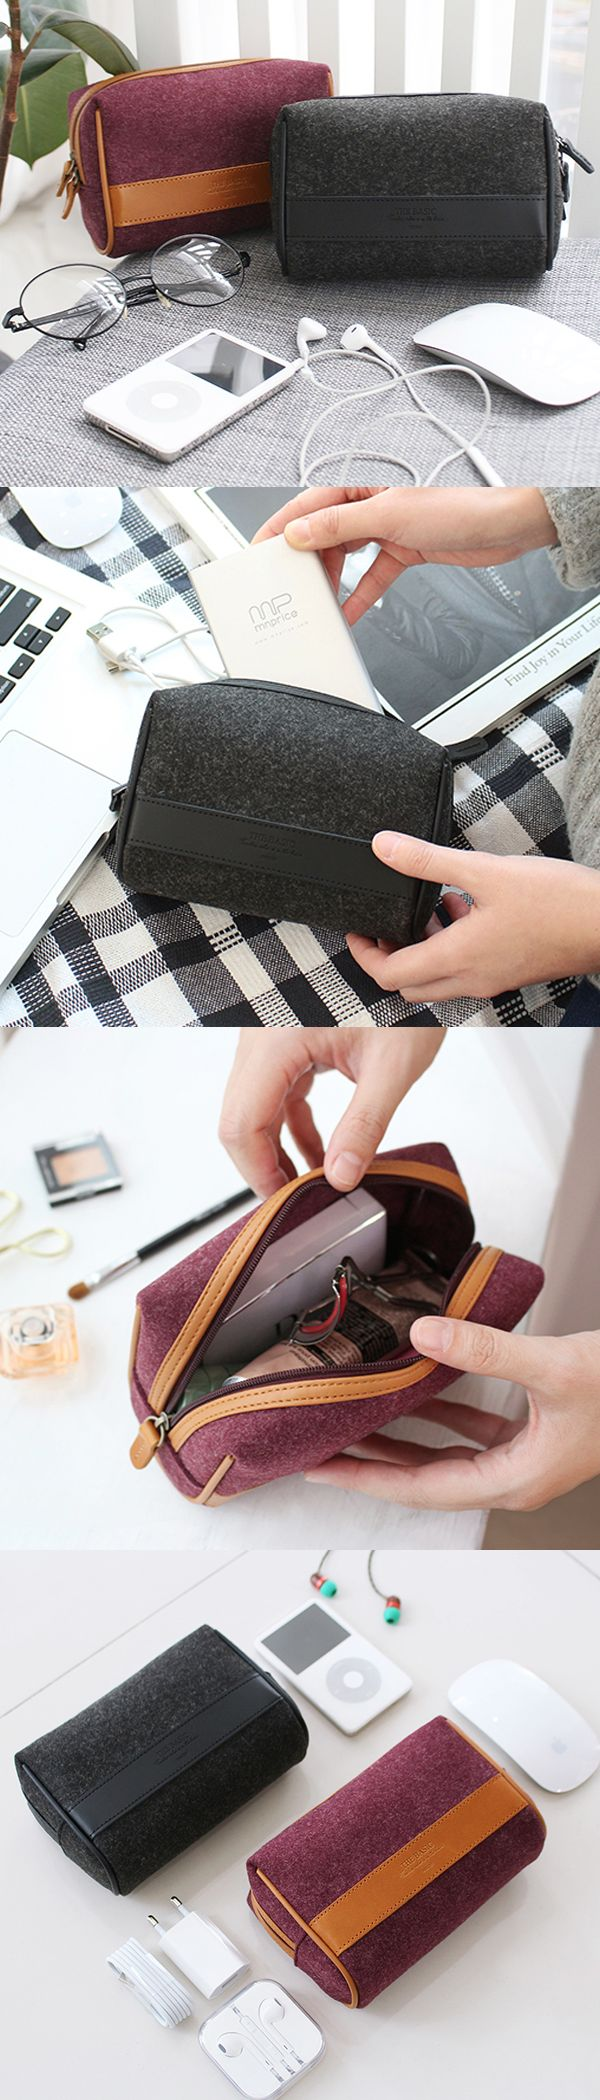 Love to carry my daily essentials in this stylish and durable pouch!